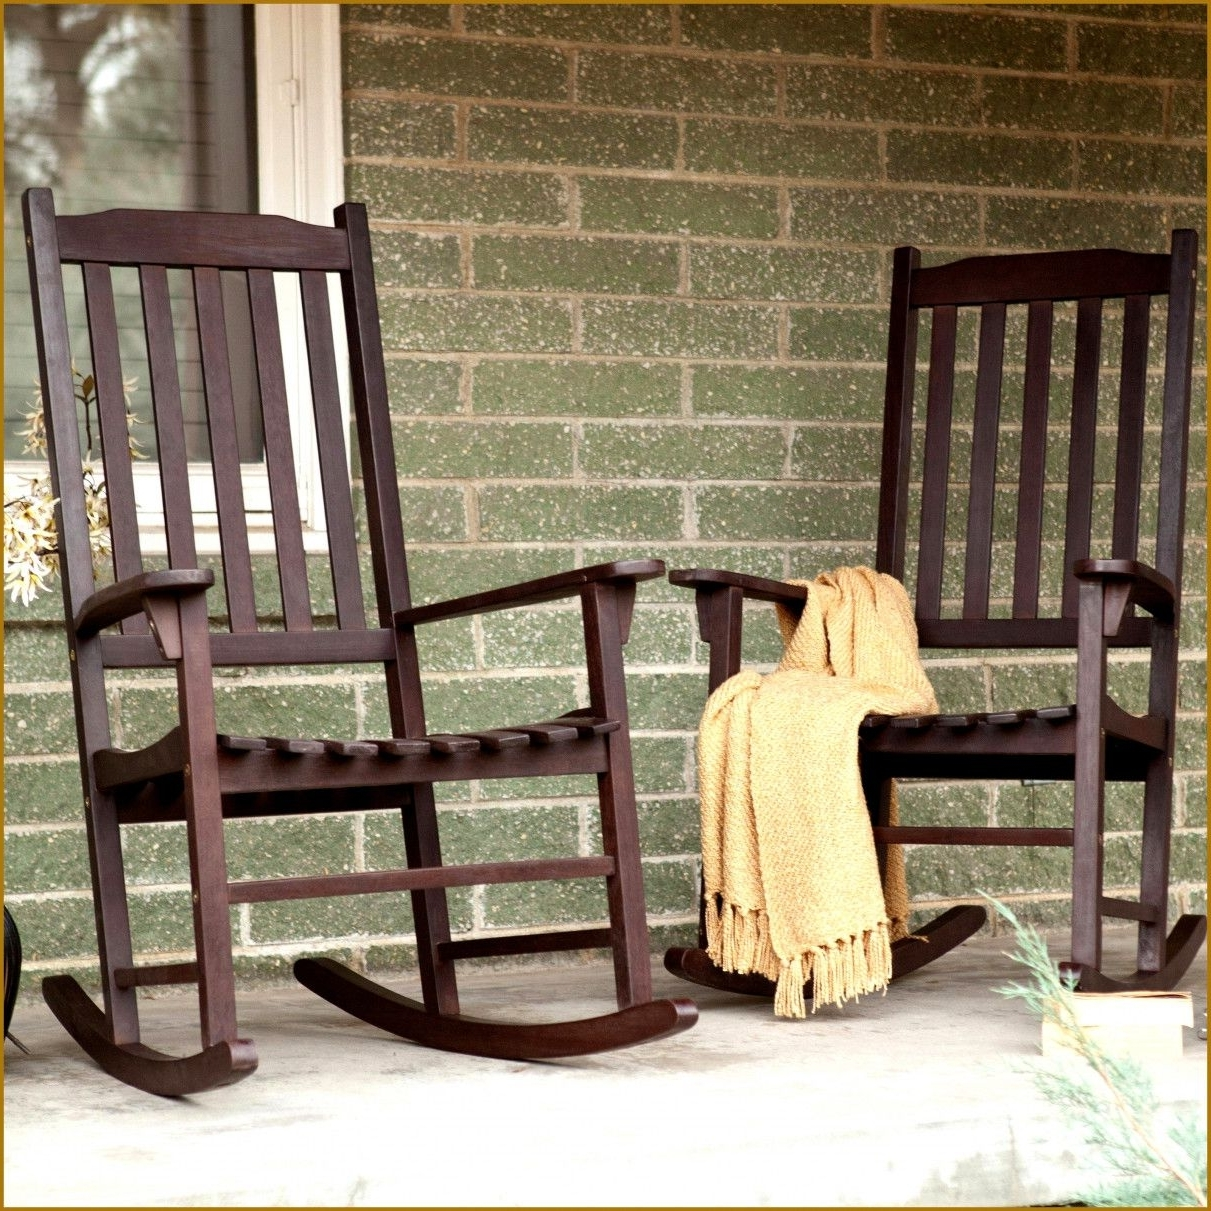 Trendy Outdoor Armless Rocking Chair White Double Porch Rocker Oak Vinyl Inside Antique Wicker Rocking Chairs With Springs (View 18 of 20)